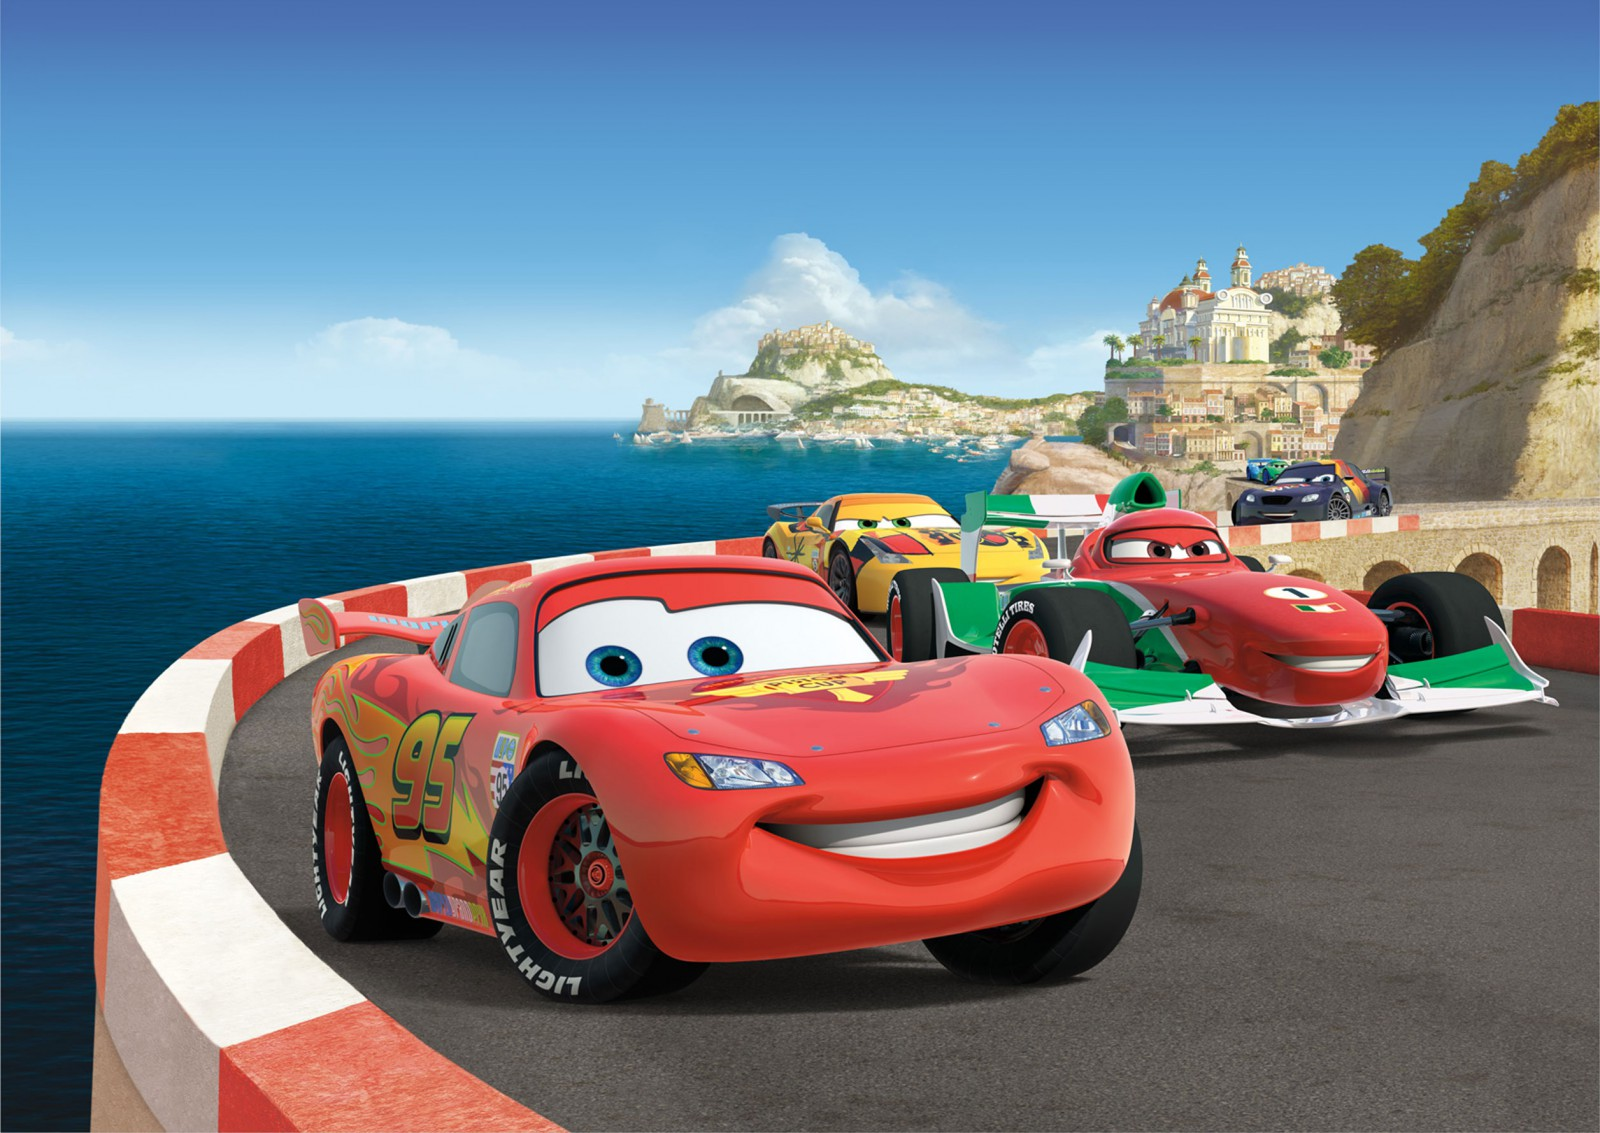 Disney photo wallpaper mural cars mcqueen 255x180cm - Disney cars wallpaper ...